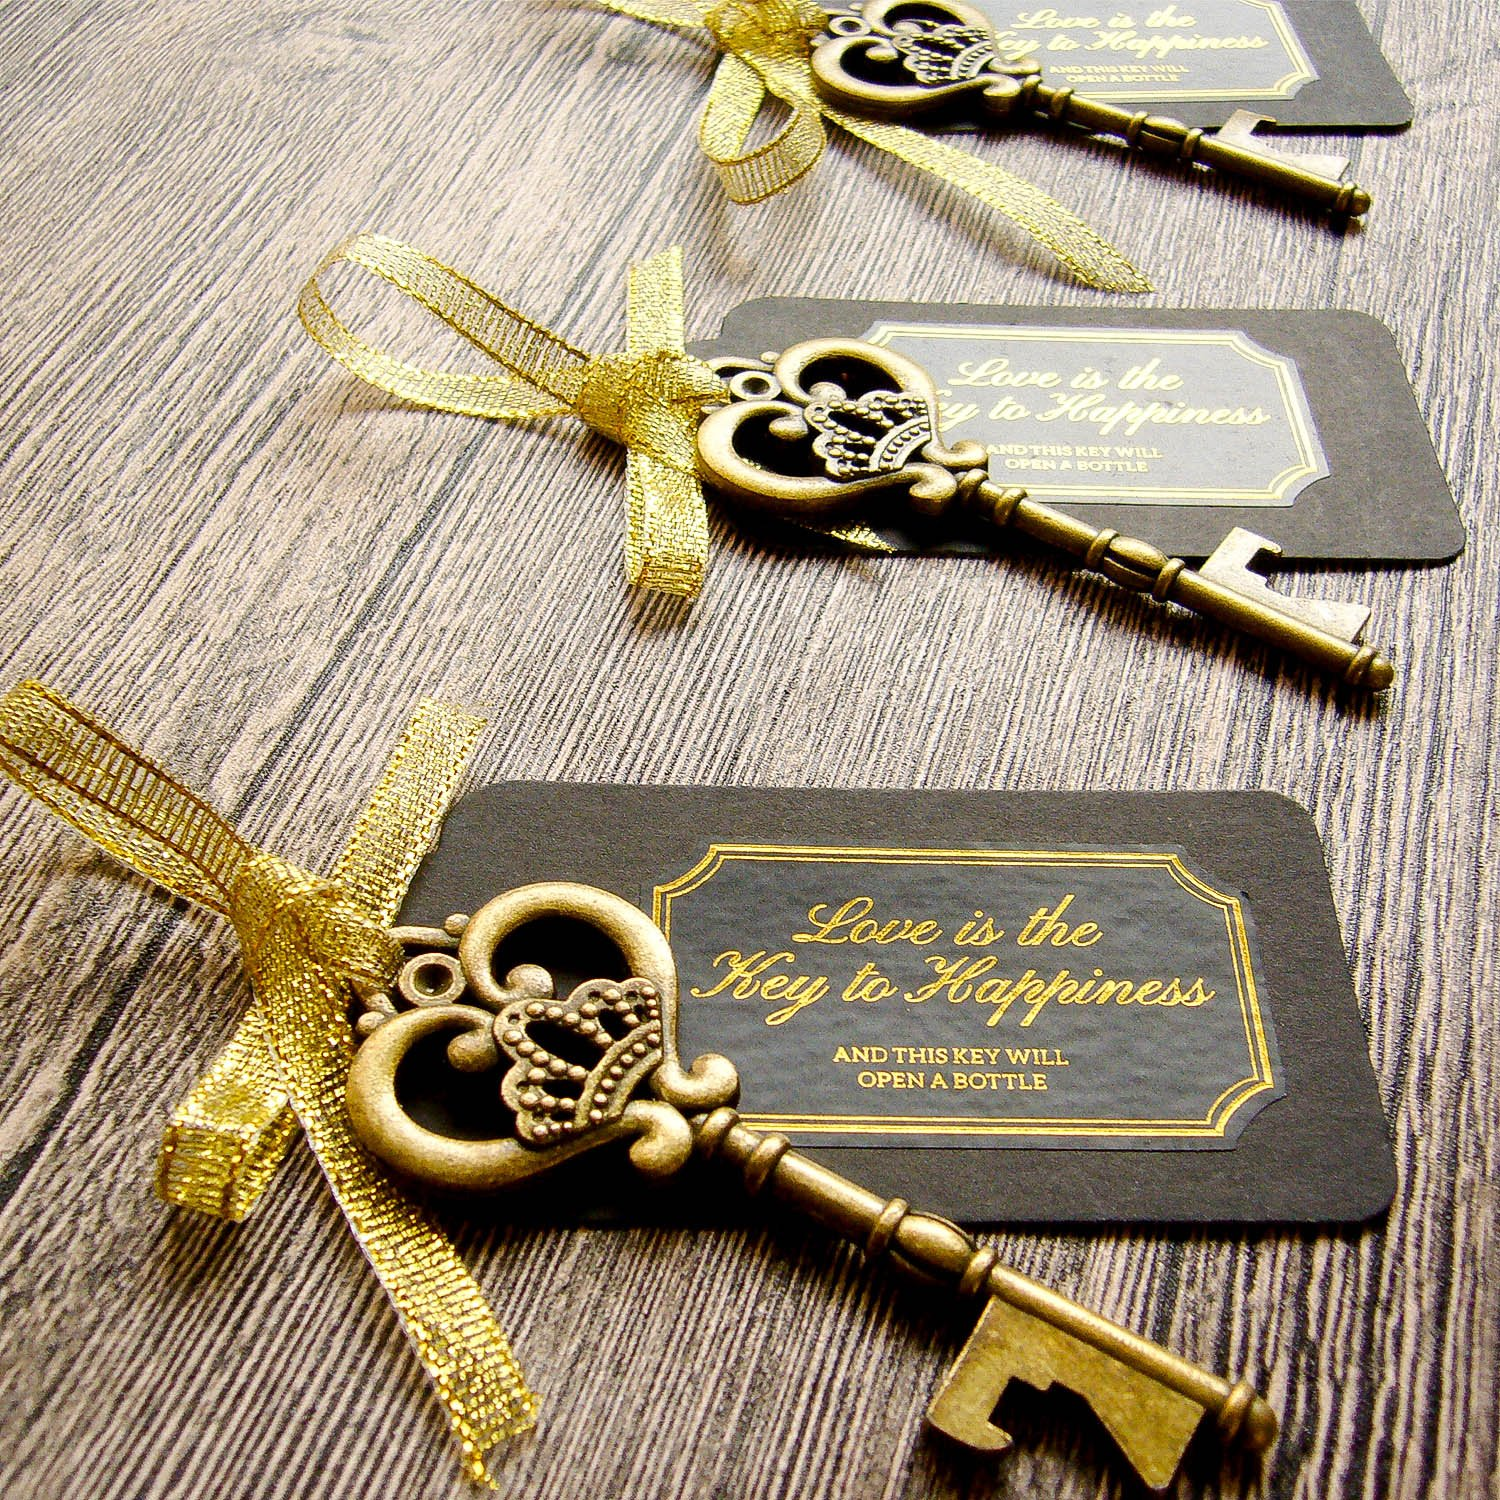 52 Heavy-Duty Metal Large Skeleton Key Bottle Opener Wedding Favor with Tag (Chalkboard Look-alike), FREE Gold Ribbon and Stickers, Vintage Bridal Shower Favors Bottle Opener for Guests (Antique Gold)